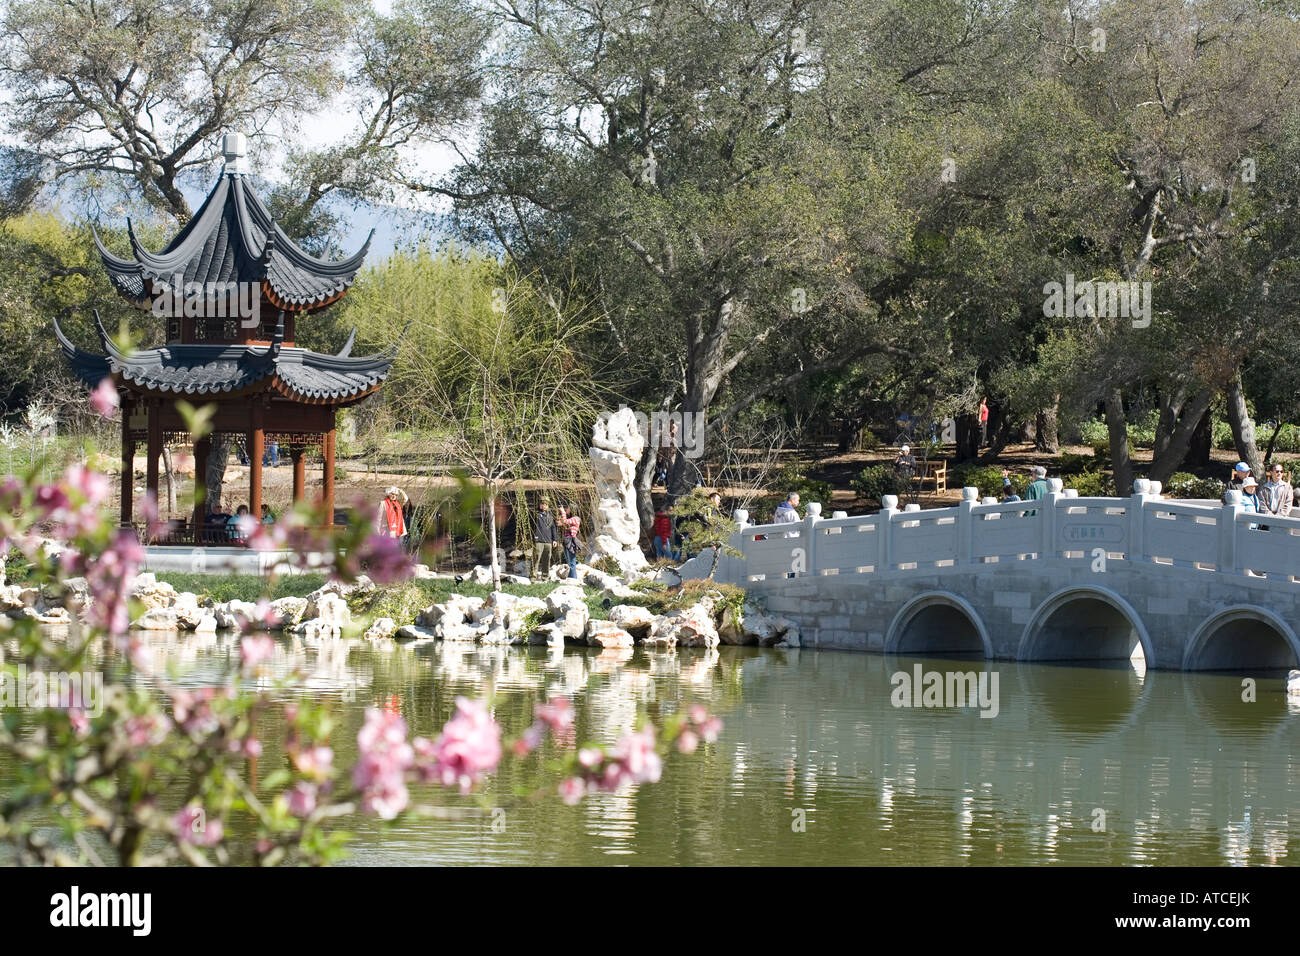 Chinese Garden At The Huntington Gardens Pasadena California Usa